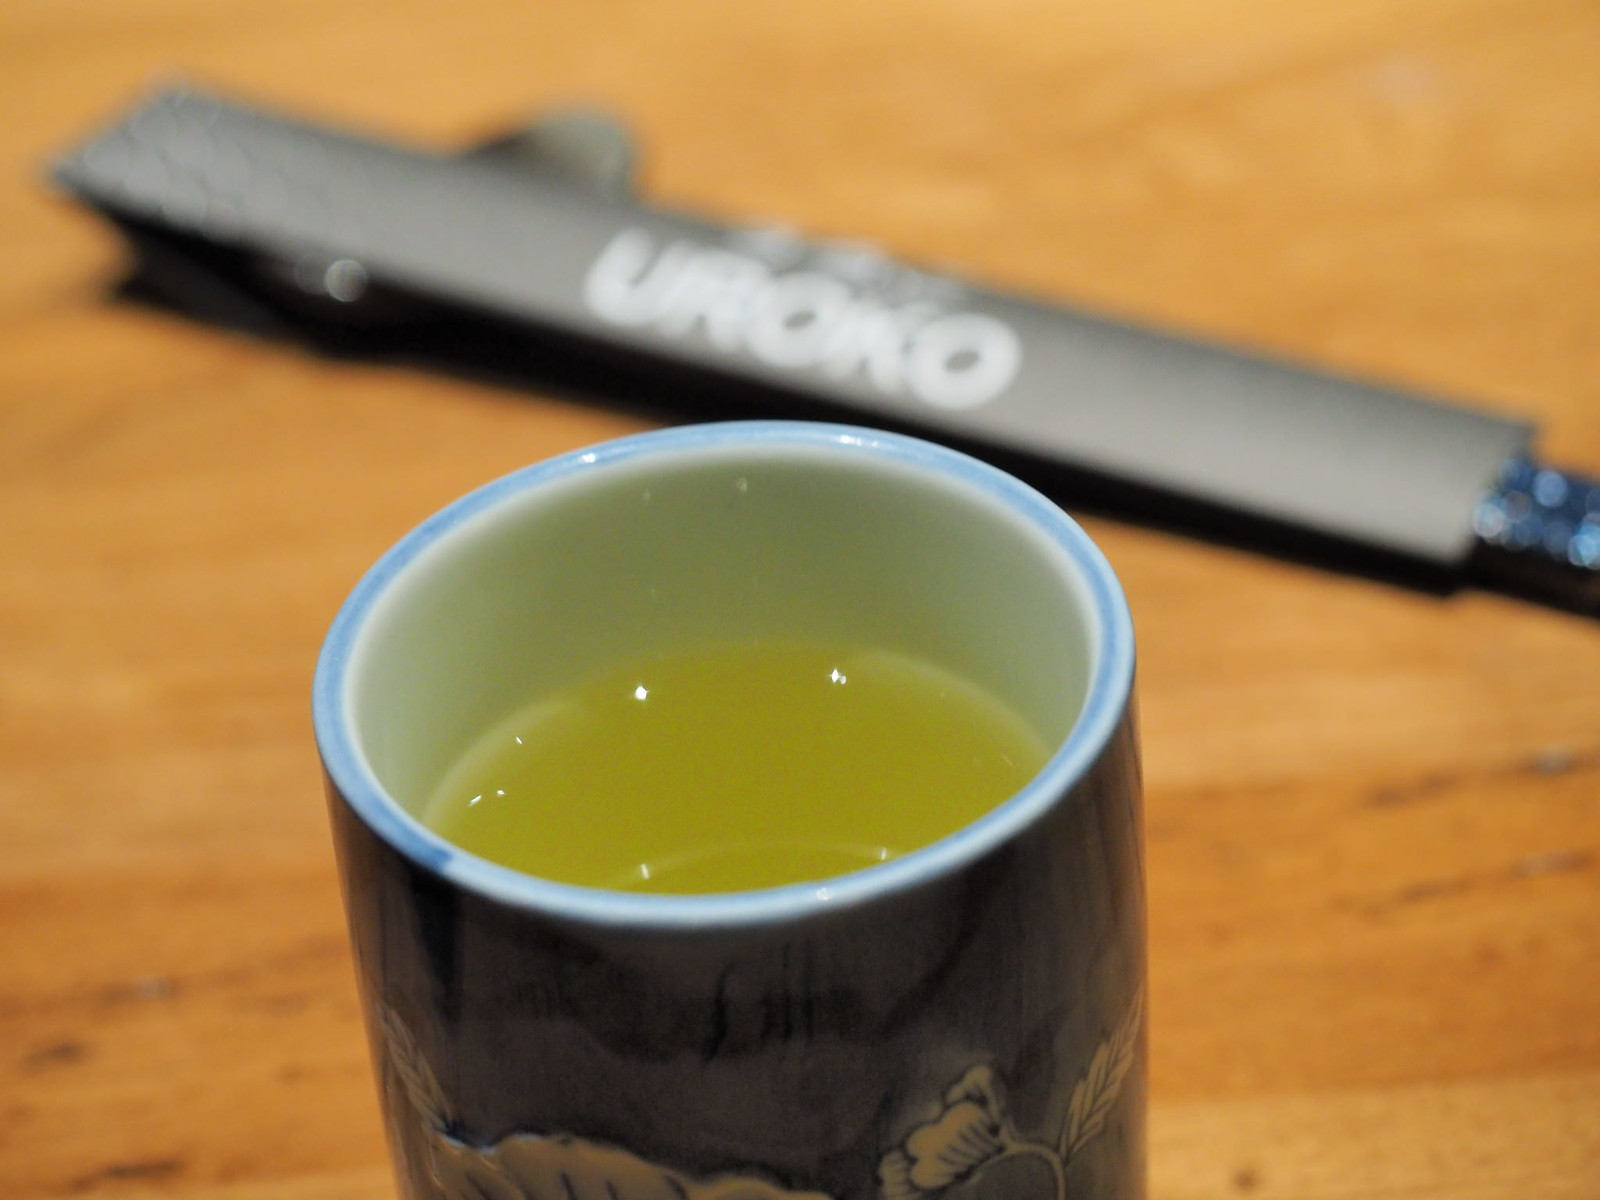 Green Tea at Uroko Japanese Cuisine at Section 17, Petaling Jaya